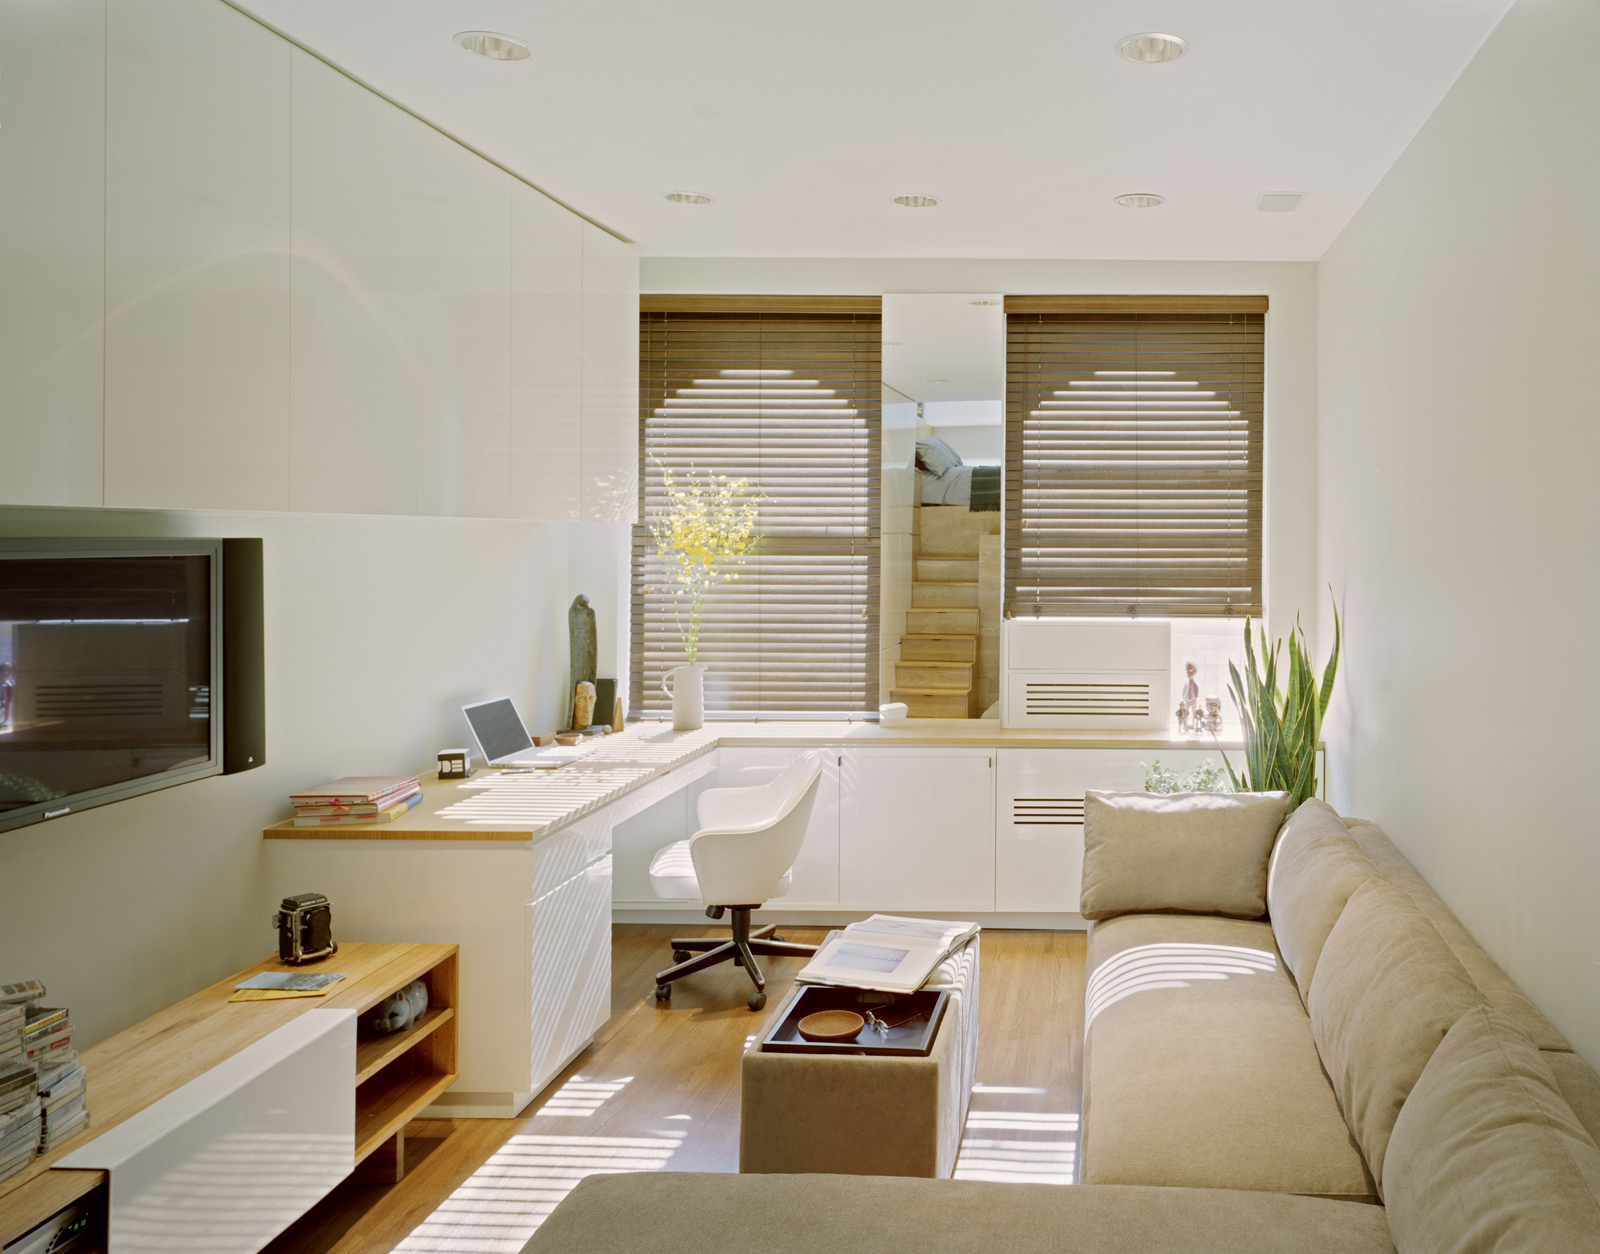 Magnificent Space Saving Tiny Apartment New York Largest Home Design Picture Inspirations Pitcheantrous